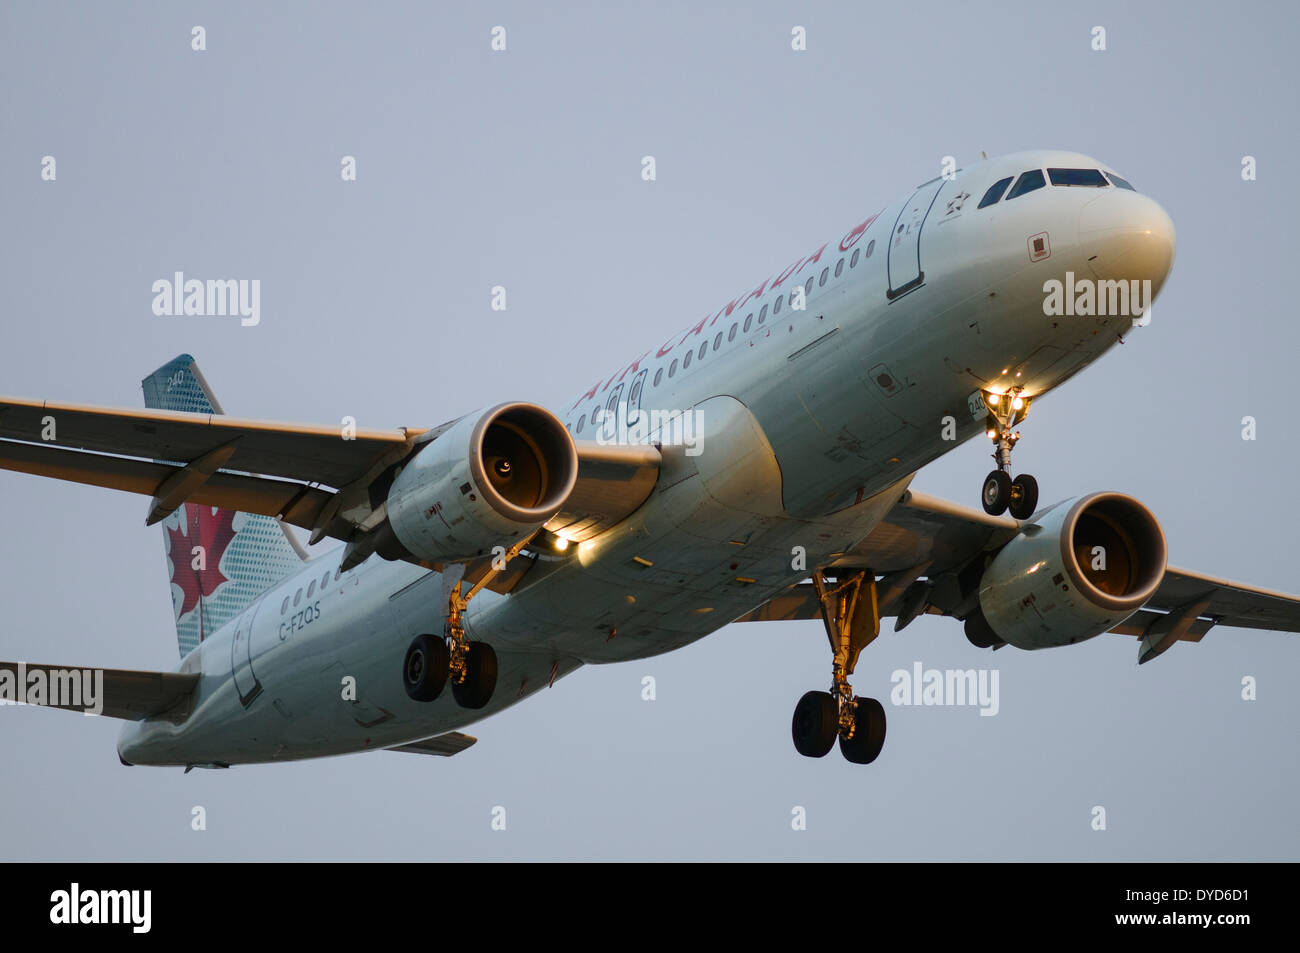 An Air Canada Airbus A320 (A320-200) plane on final Approach for landing at Vancouver International Airport, Canada - Stock Image